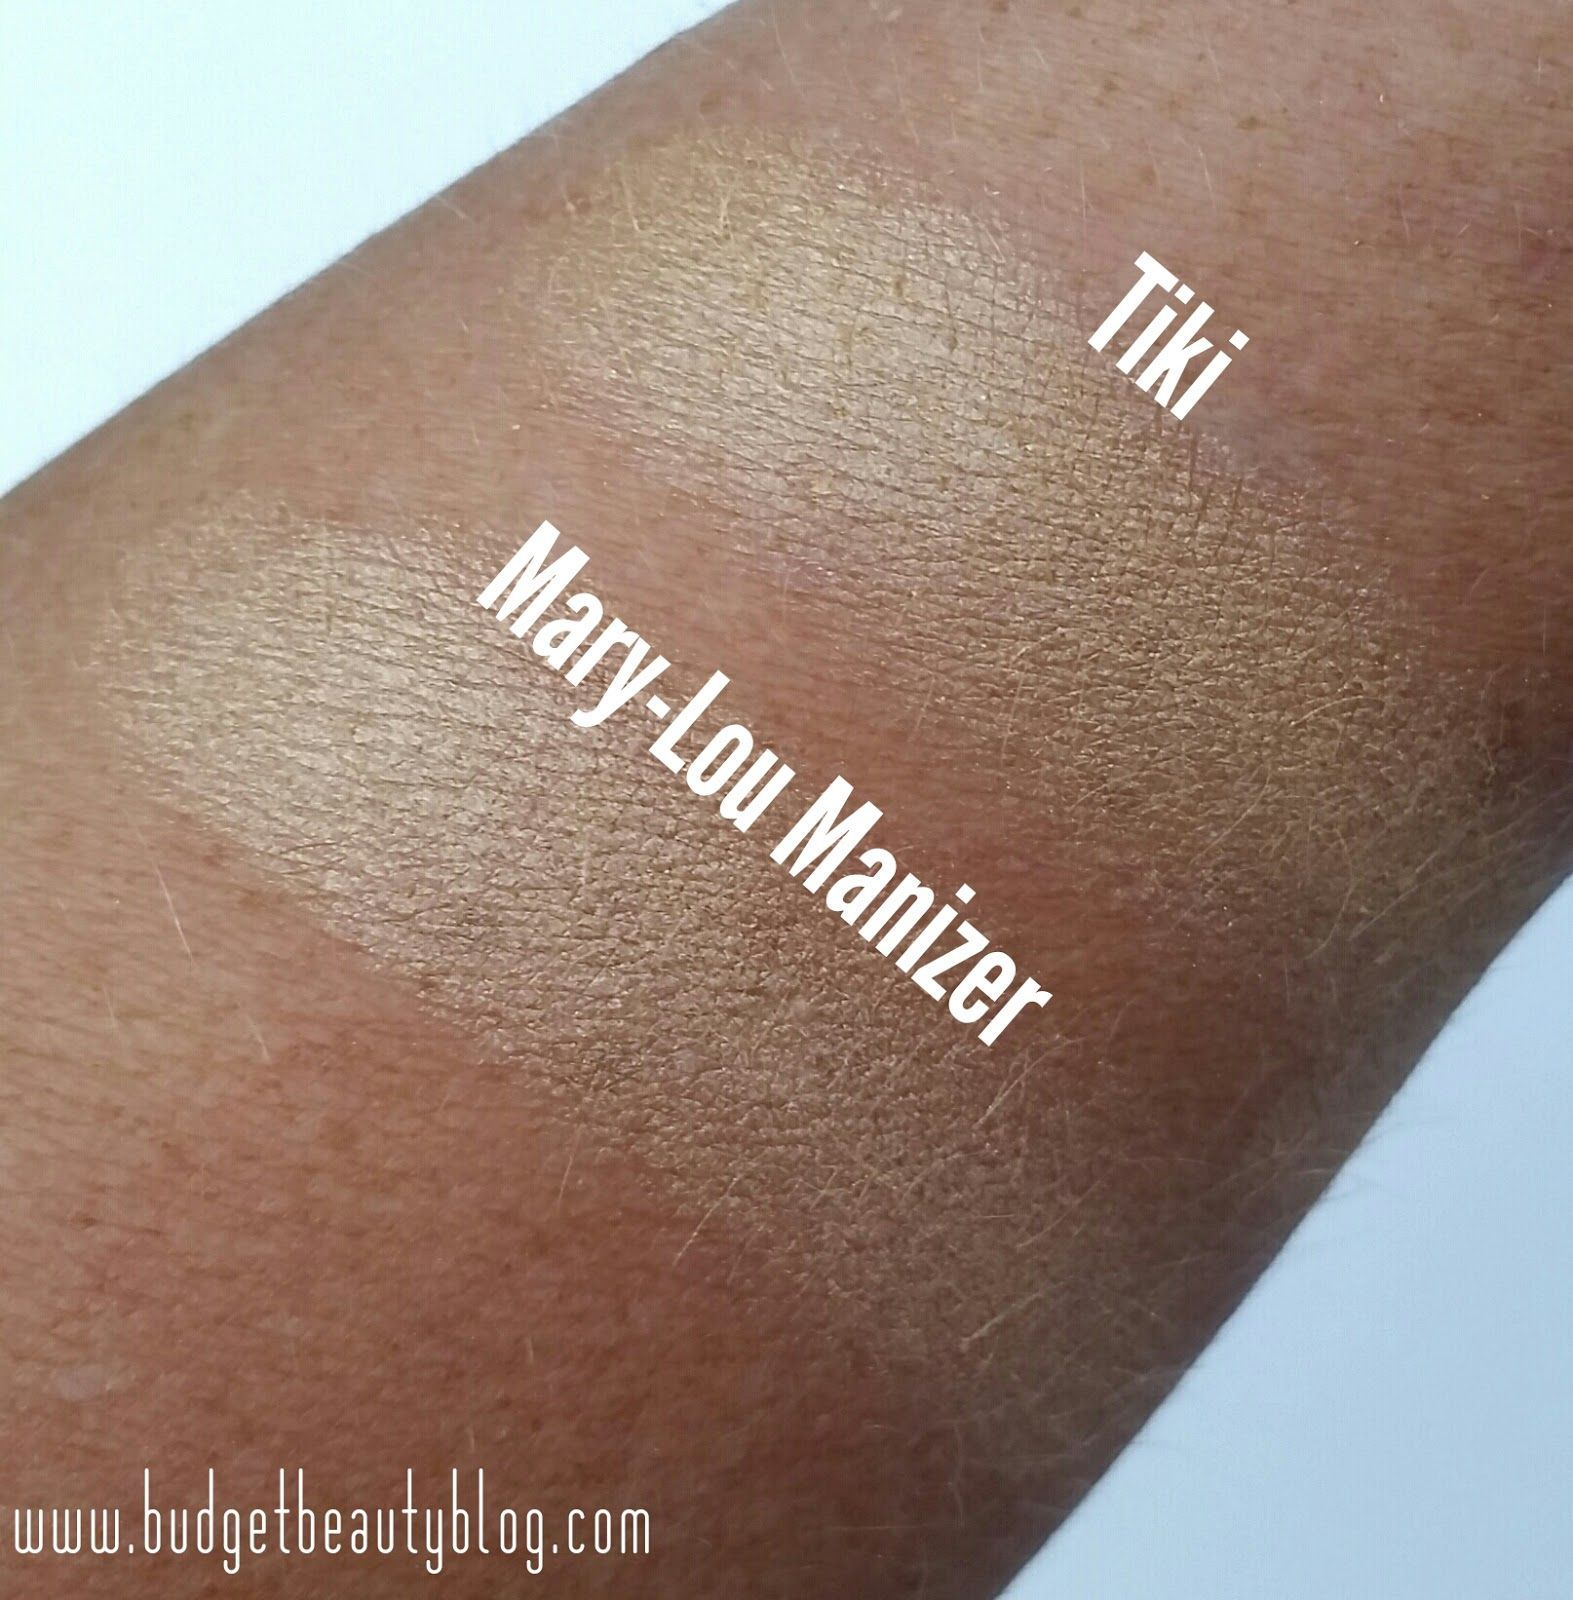 Mary Lou Manizer by theBalm #11